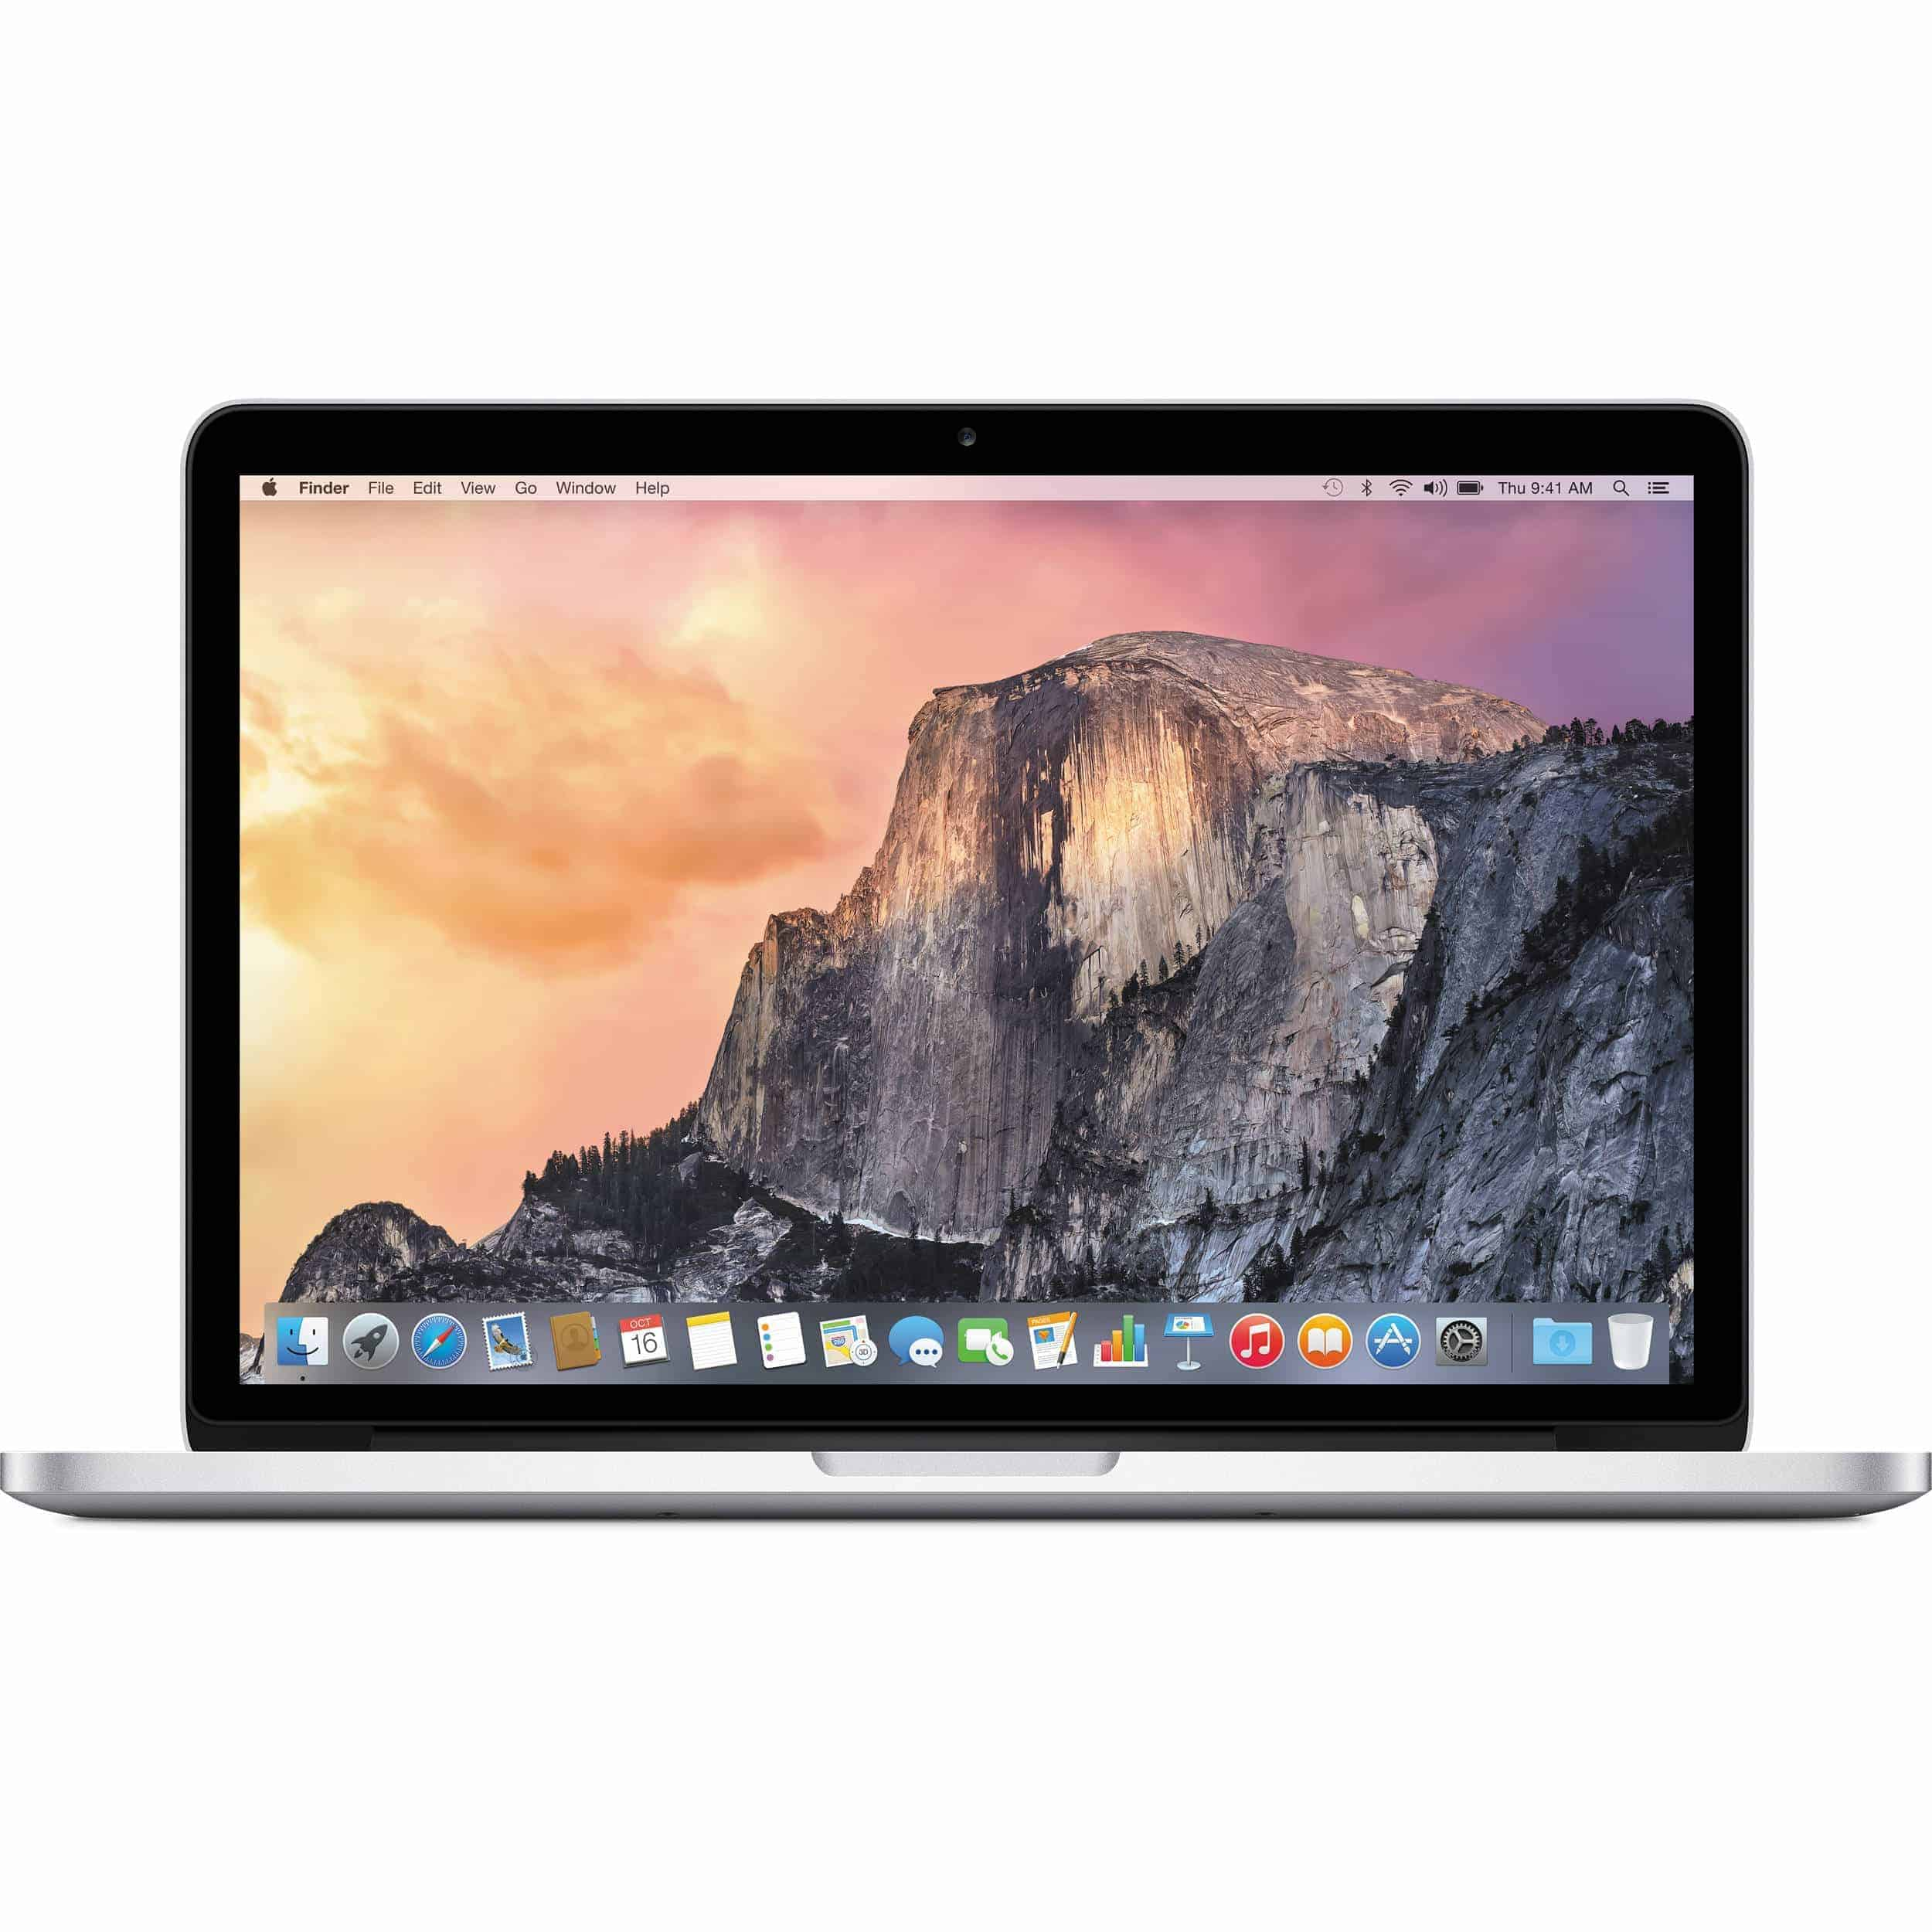 15 inch 2012 2015 retina macbook pro screen replacement. Black Bedroom Furniture Sets. Home Design Ideas